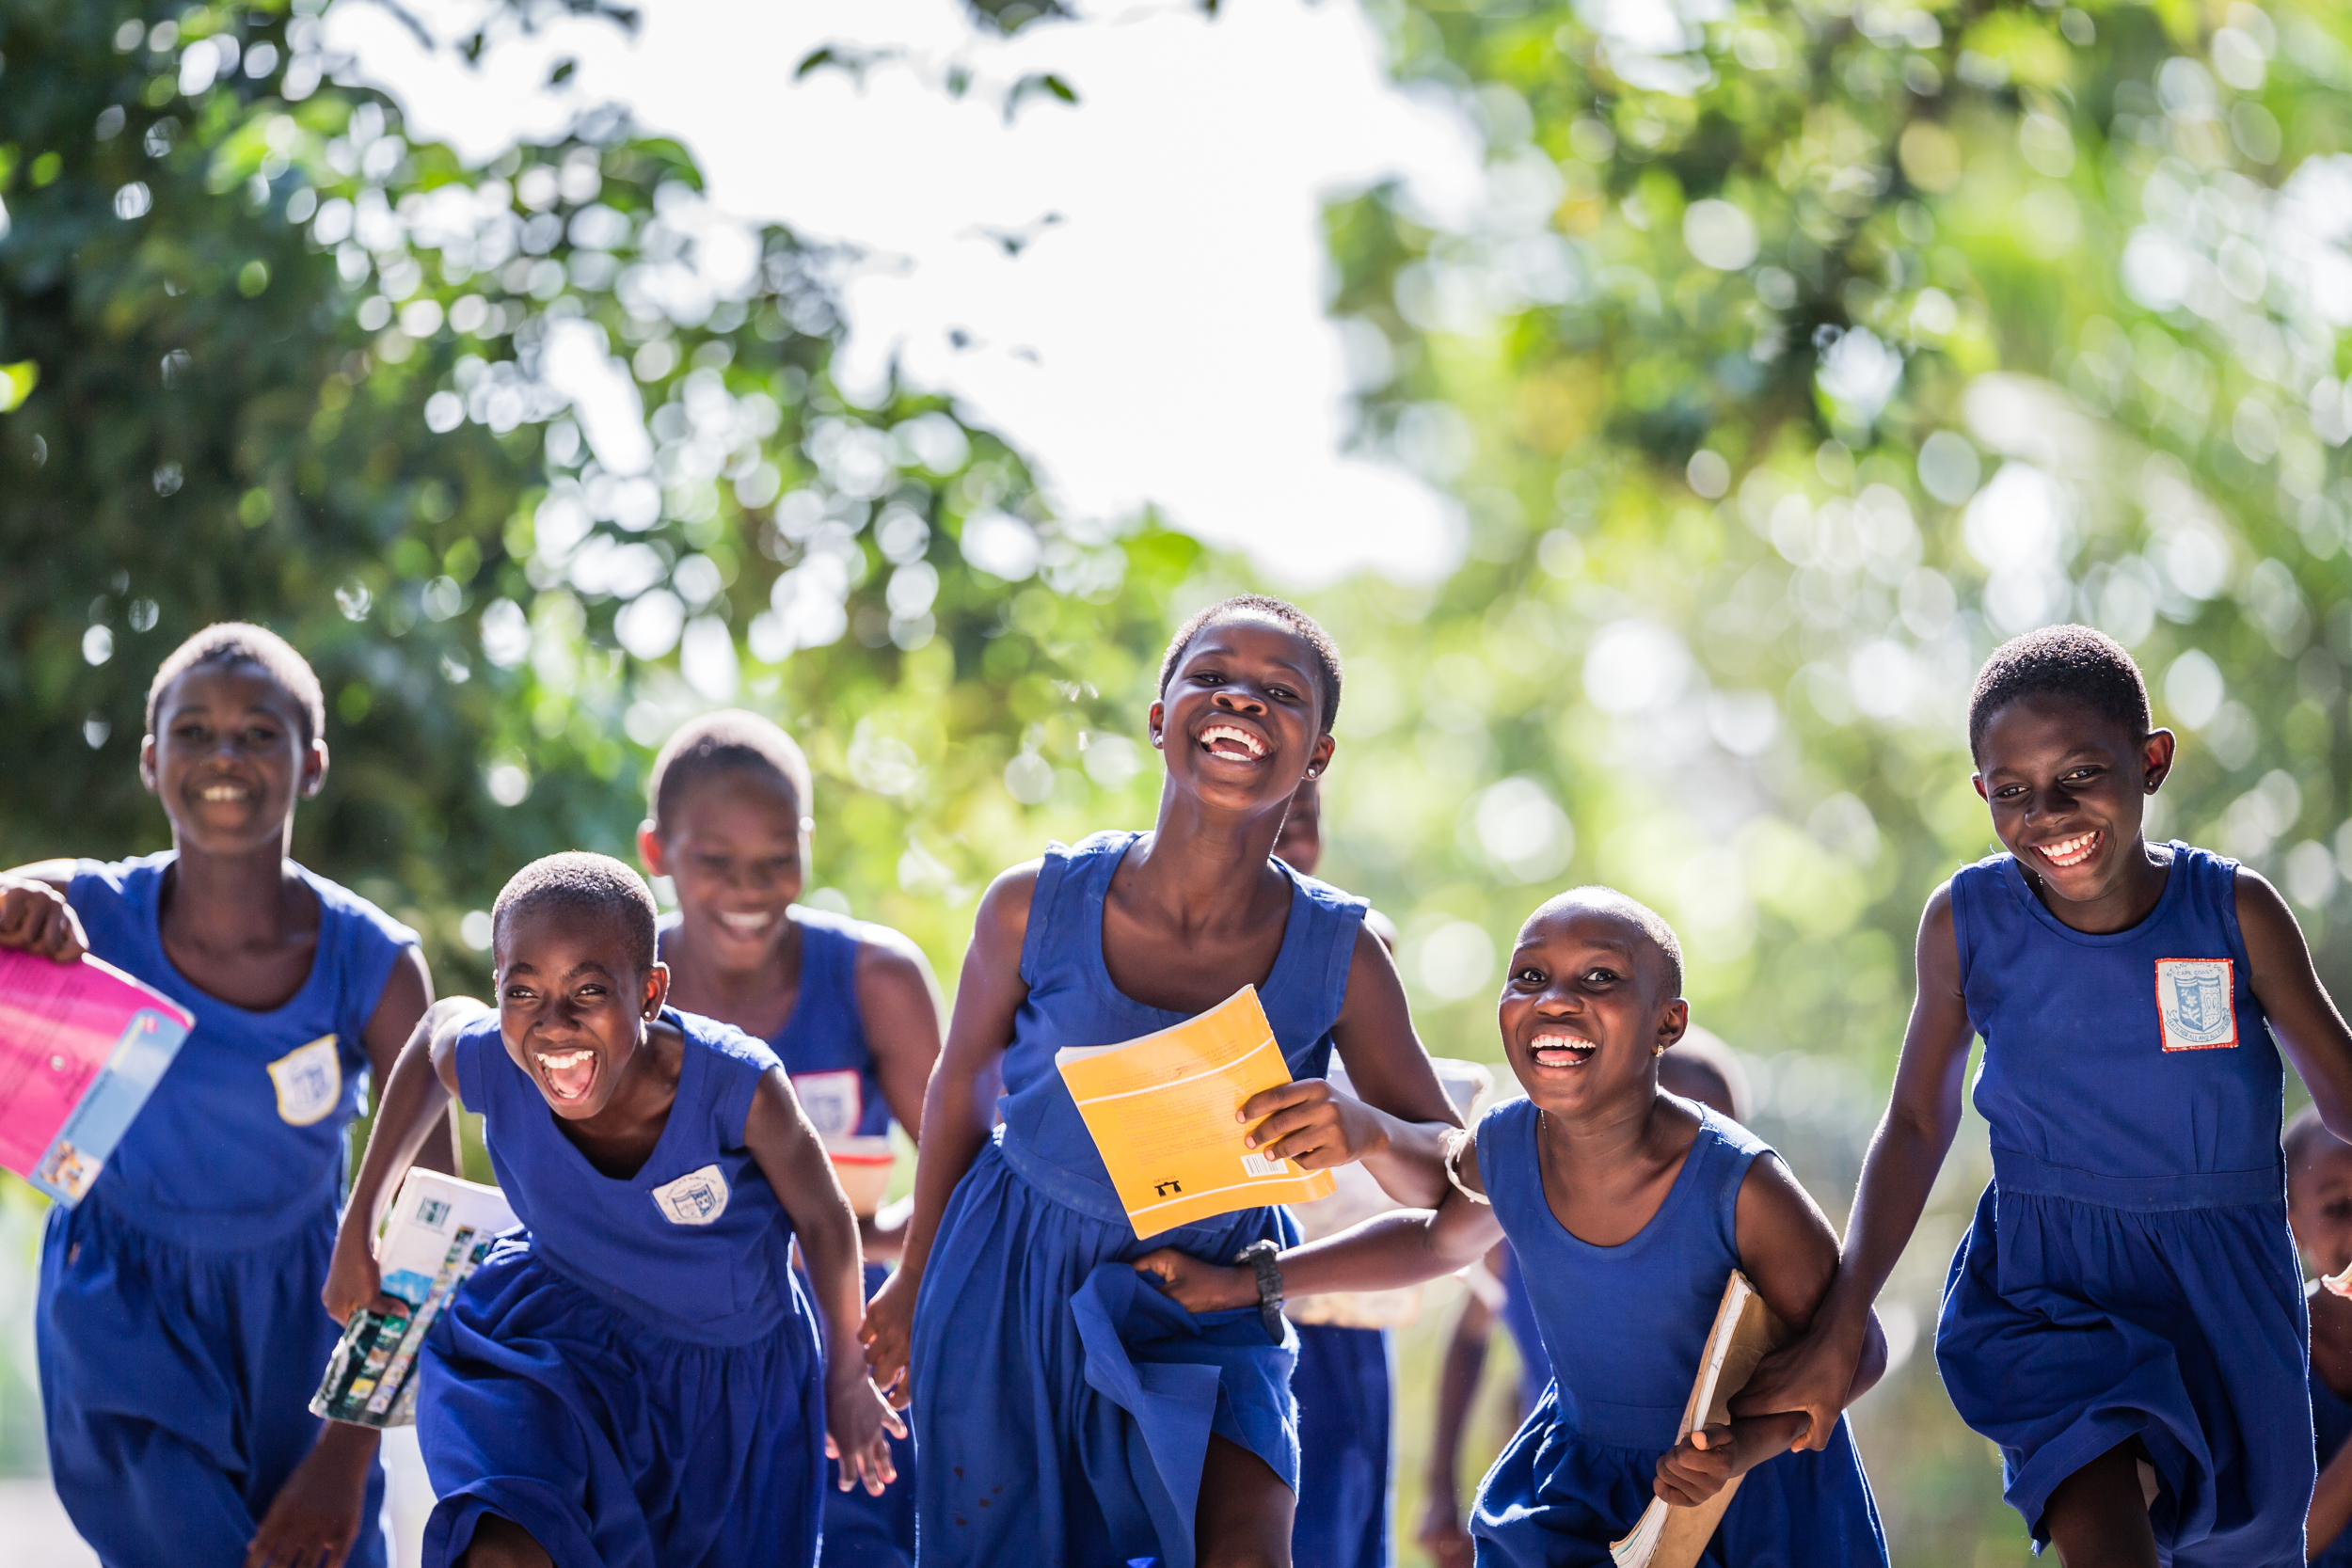 Roundworms, whipworms, hookworms and other soil-transmitted helminths have failed to put the brakes on these excited children, running to their after-school learning club at St Monica's Girls School. Thanks to the ongoing deworming programme in their community, these girls can keep on running towards empowerment and education. Cape Coast, Ghana.  Commissioned by GSK to illustrate the global campaign by the World Health Organisation (WHO)to combat intestinal worms in school-age children.WHO estimates that over 600 million school-age children are living in areas where these parasites are transmitted.